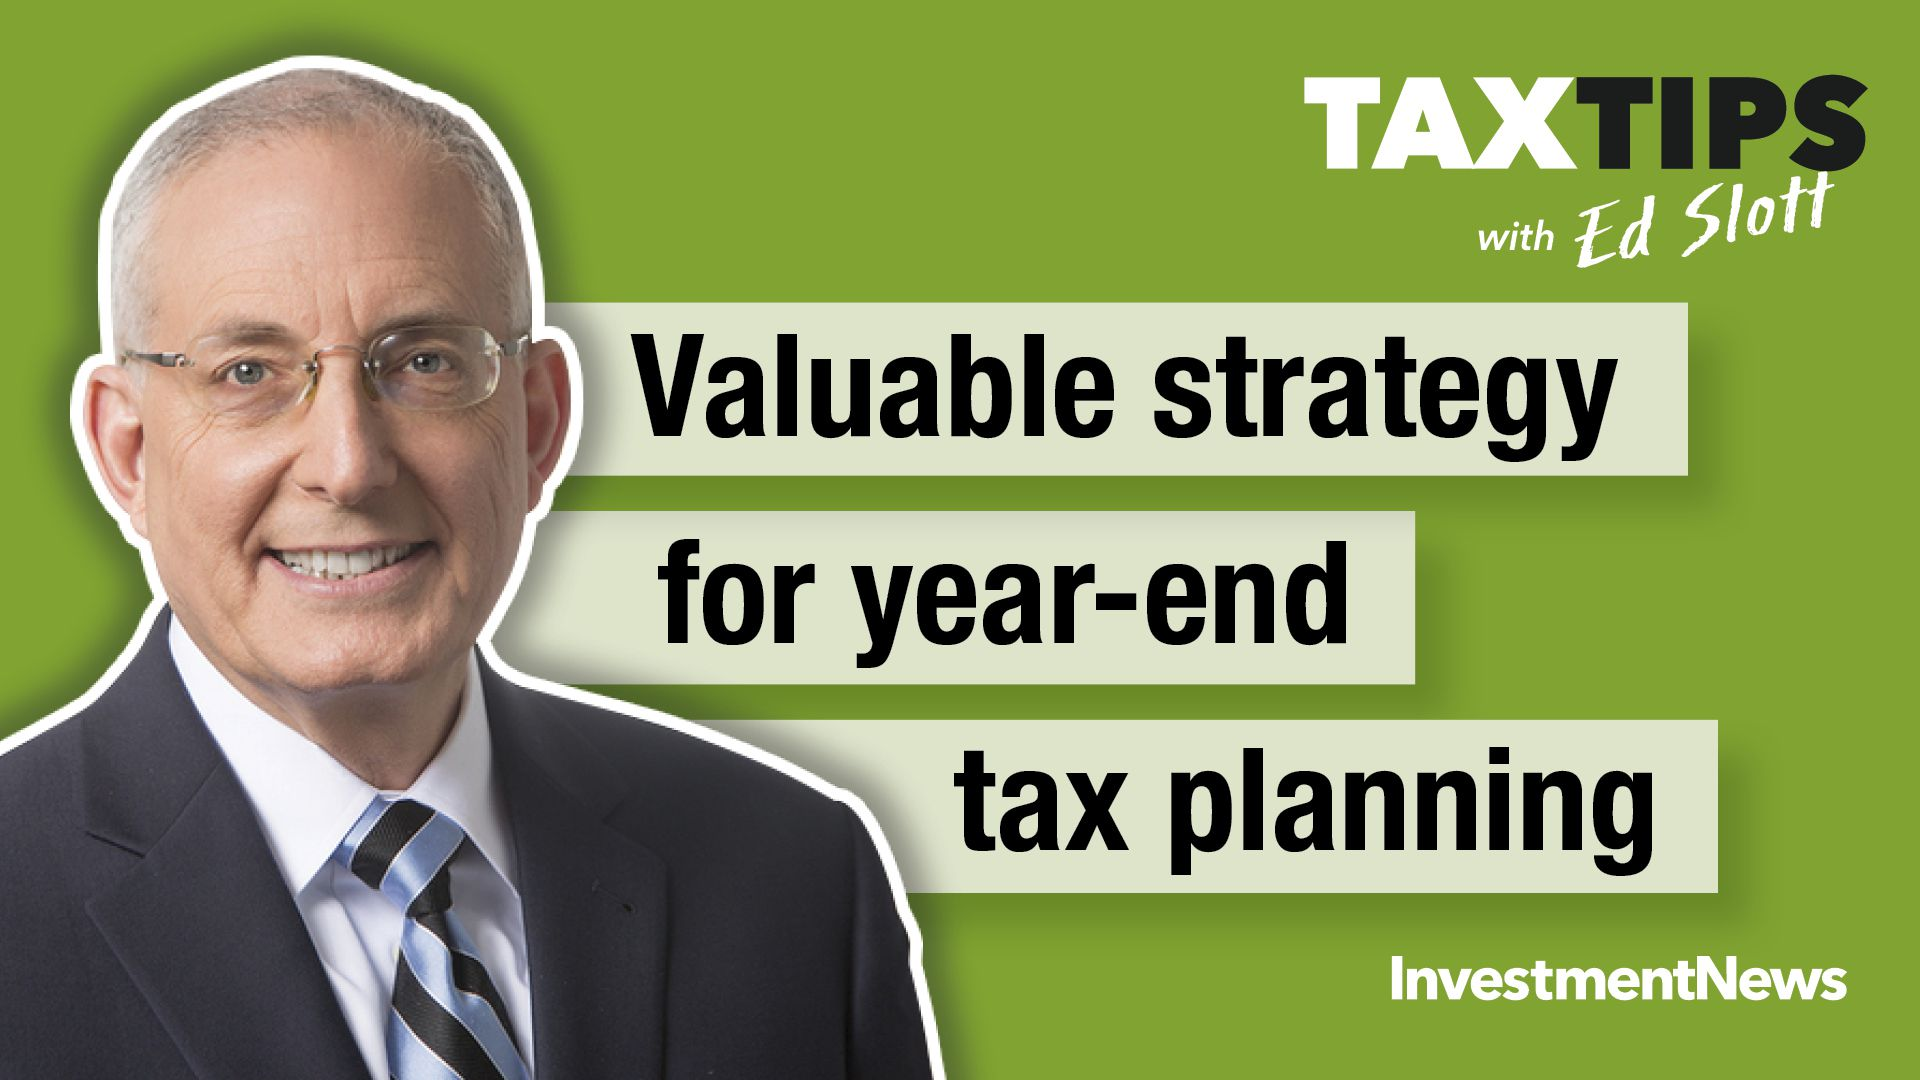 Valuable strategy for year-end tax planning